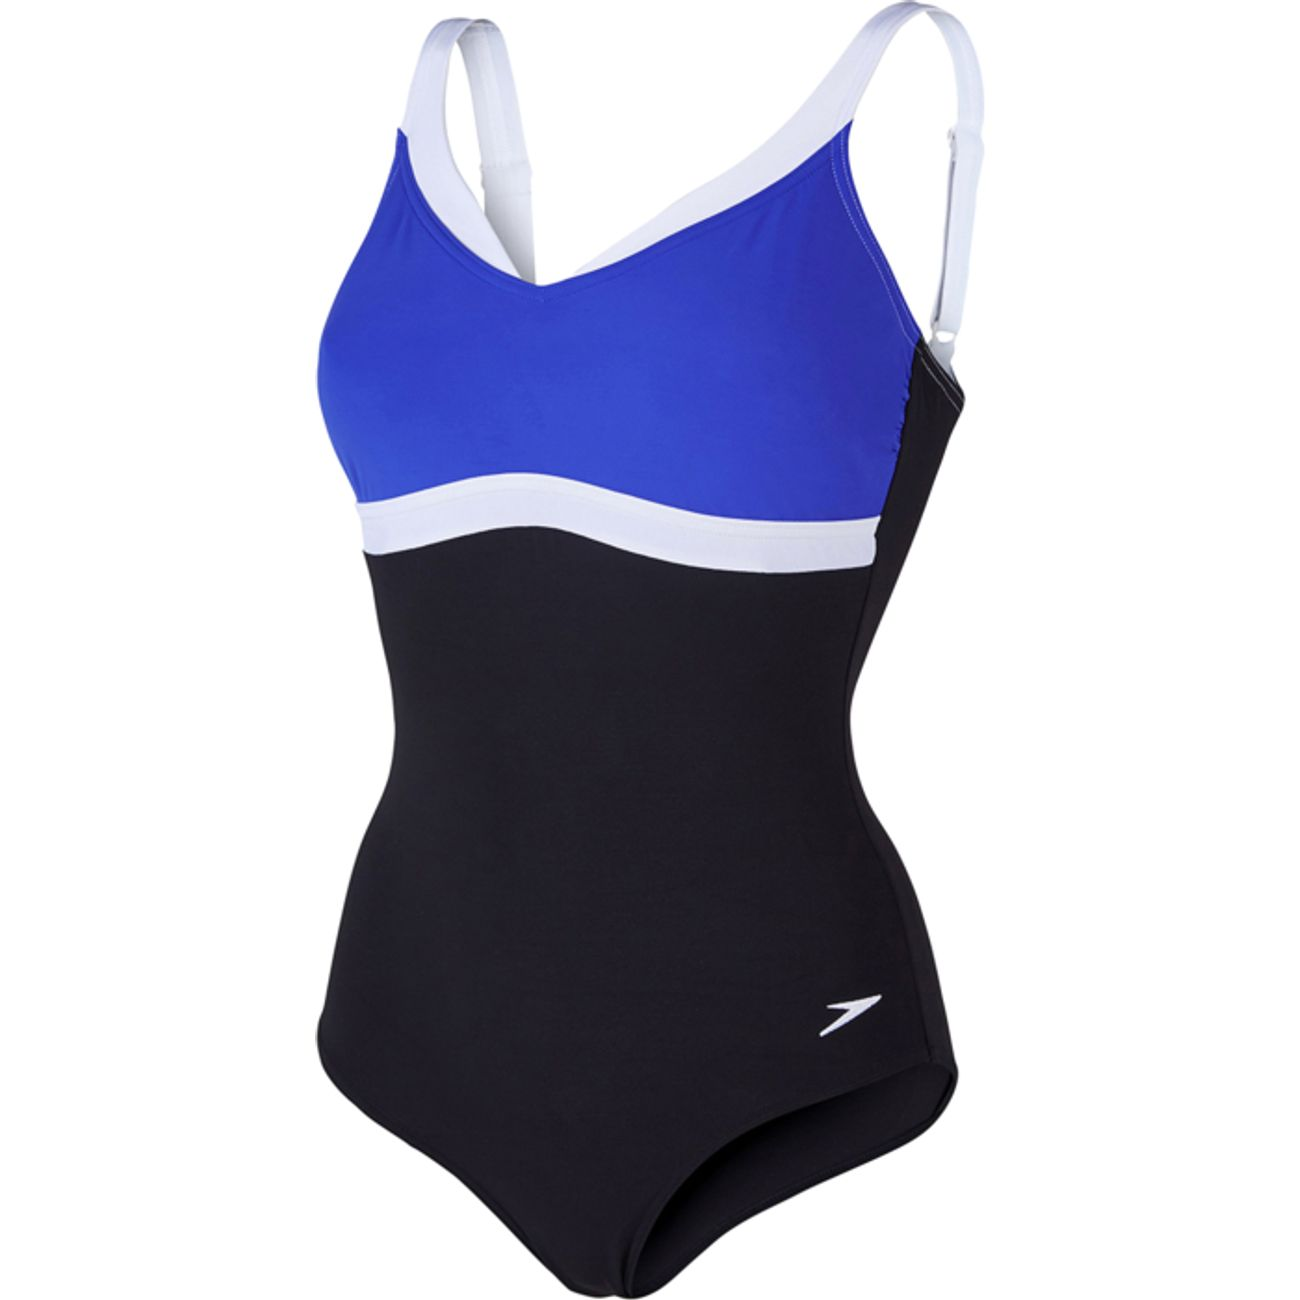 MAILLOT DE BAIN 2 PIECES Aquagym femme SPEEDO SPEEDOSCULPTURE AQUAJEWEL